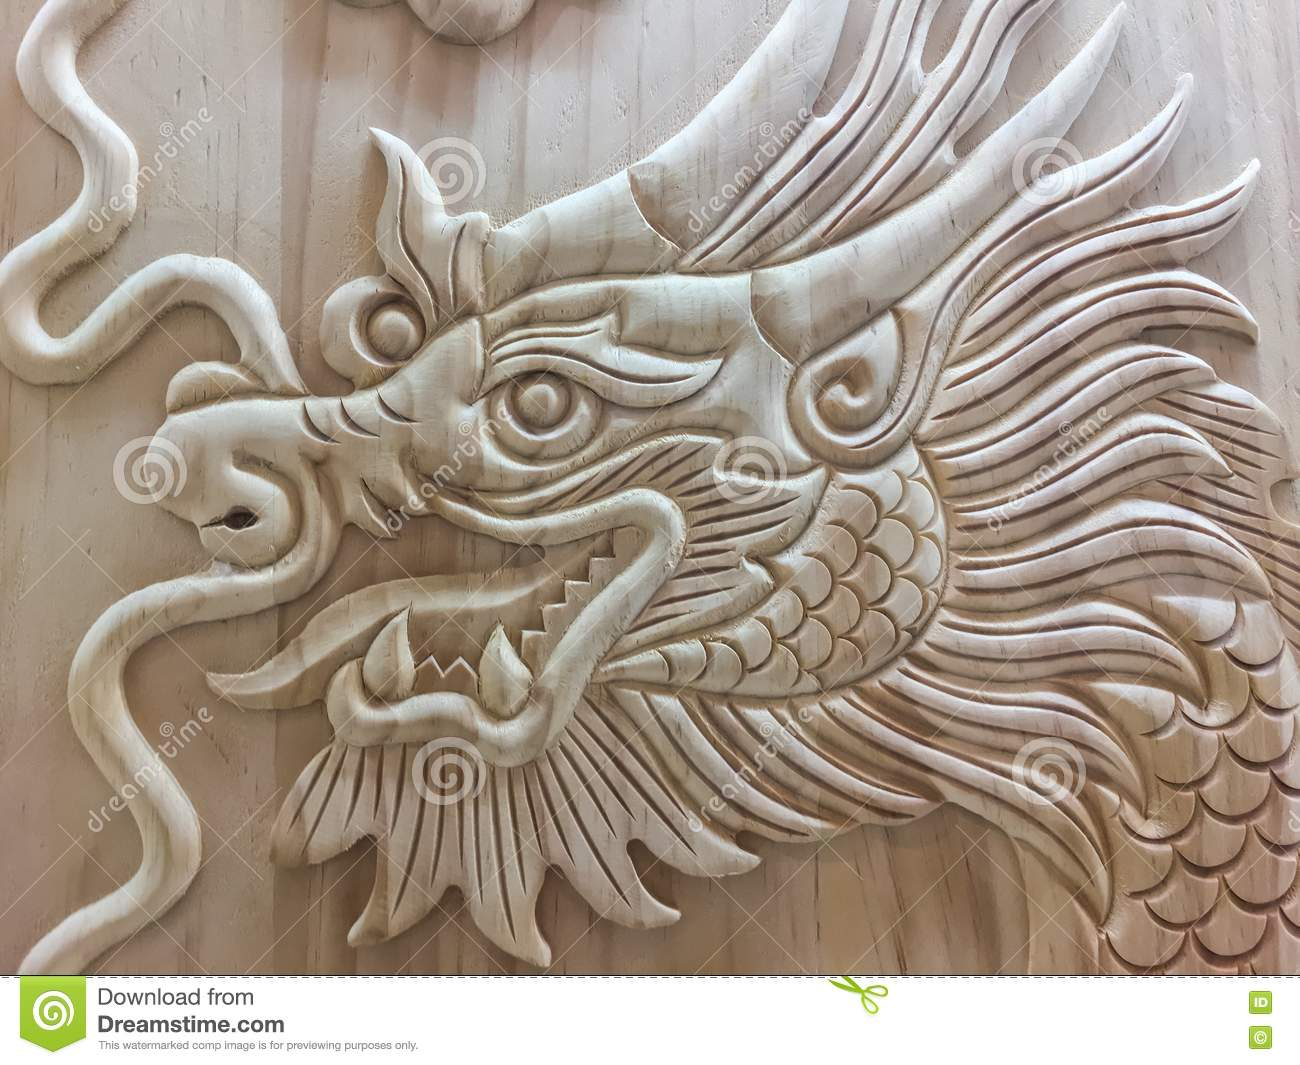 Dragon gold Chinese year new sign symbols religion powers leader carving